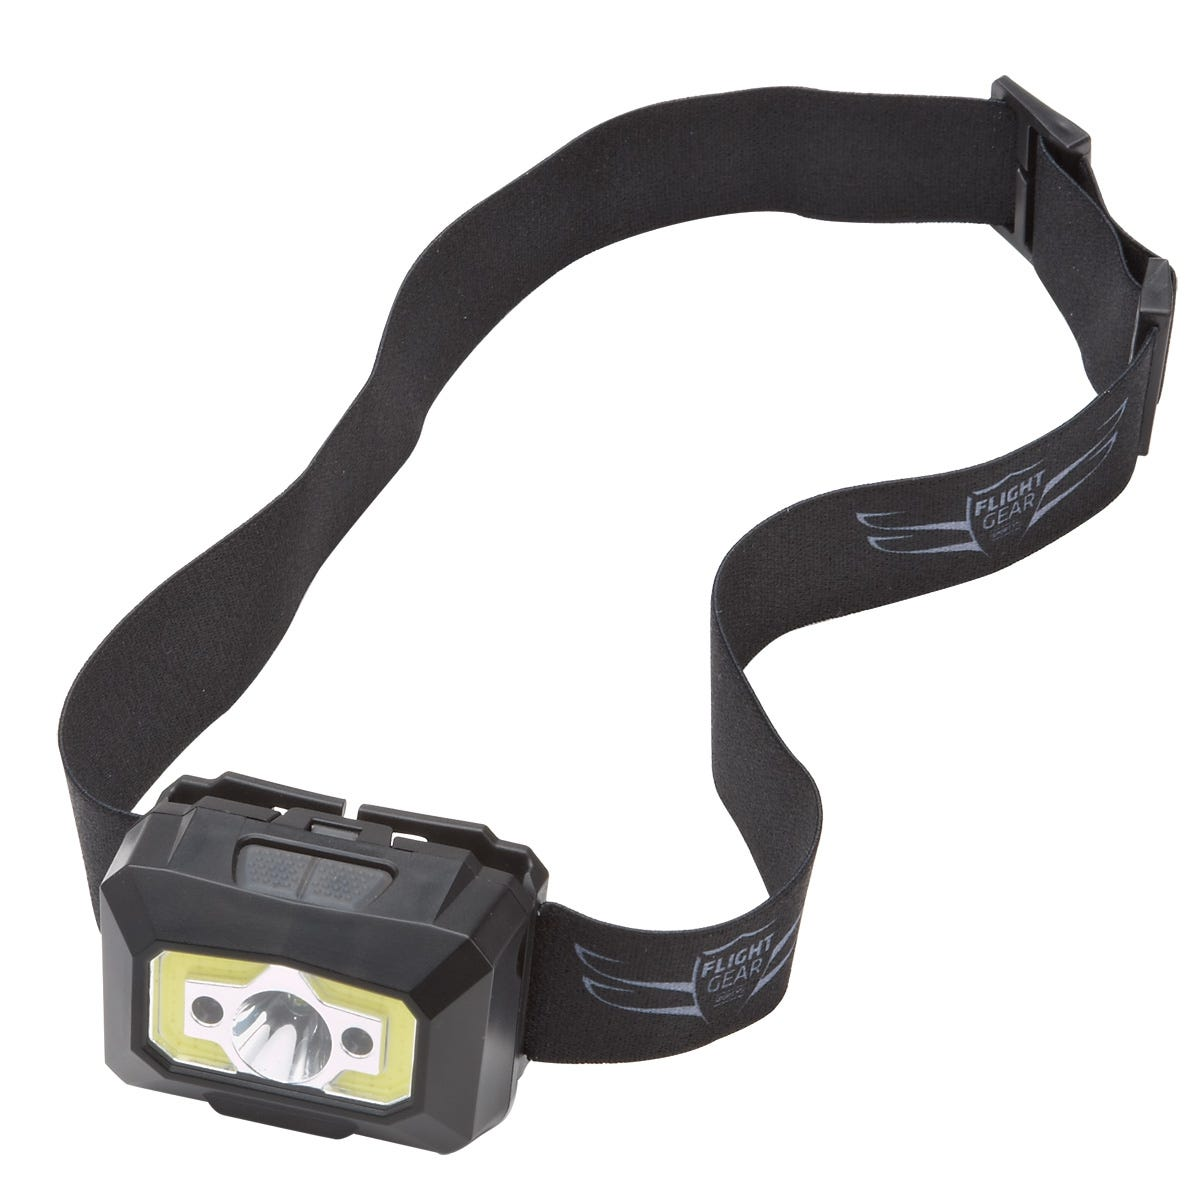 Flight Gear Headlamp